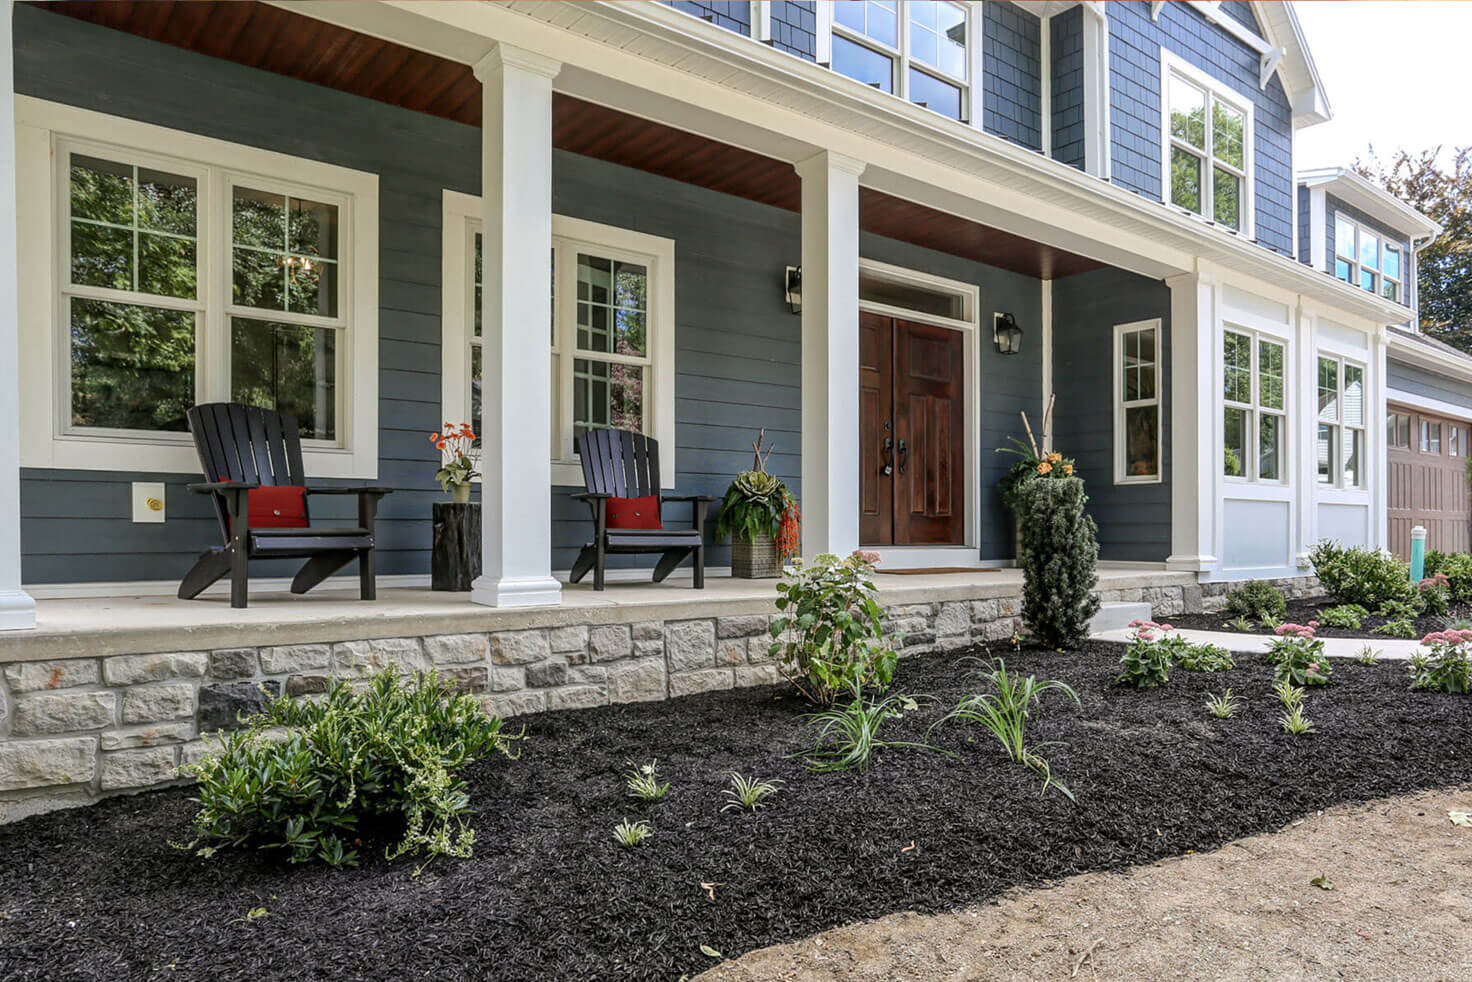 STEP NINELandscaping & Driveway - Groom the exterior. A well-landscaped home & proper driveway add a valuable level of polish to your custom home. We help you to reduce maintenance effort and costs in the long run.